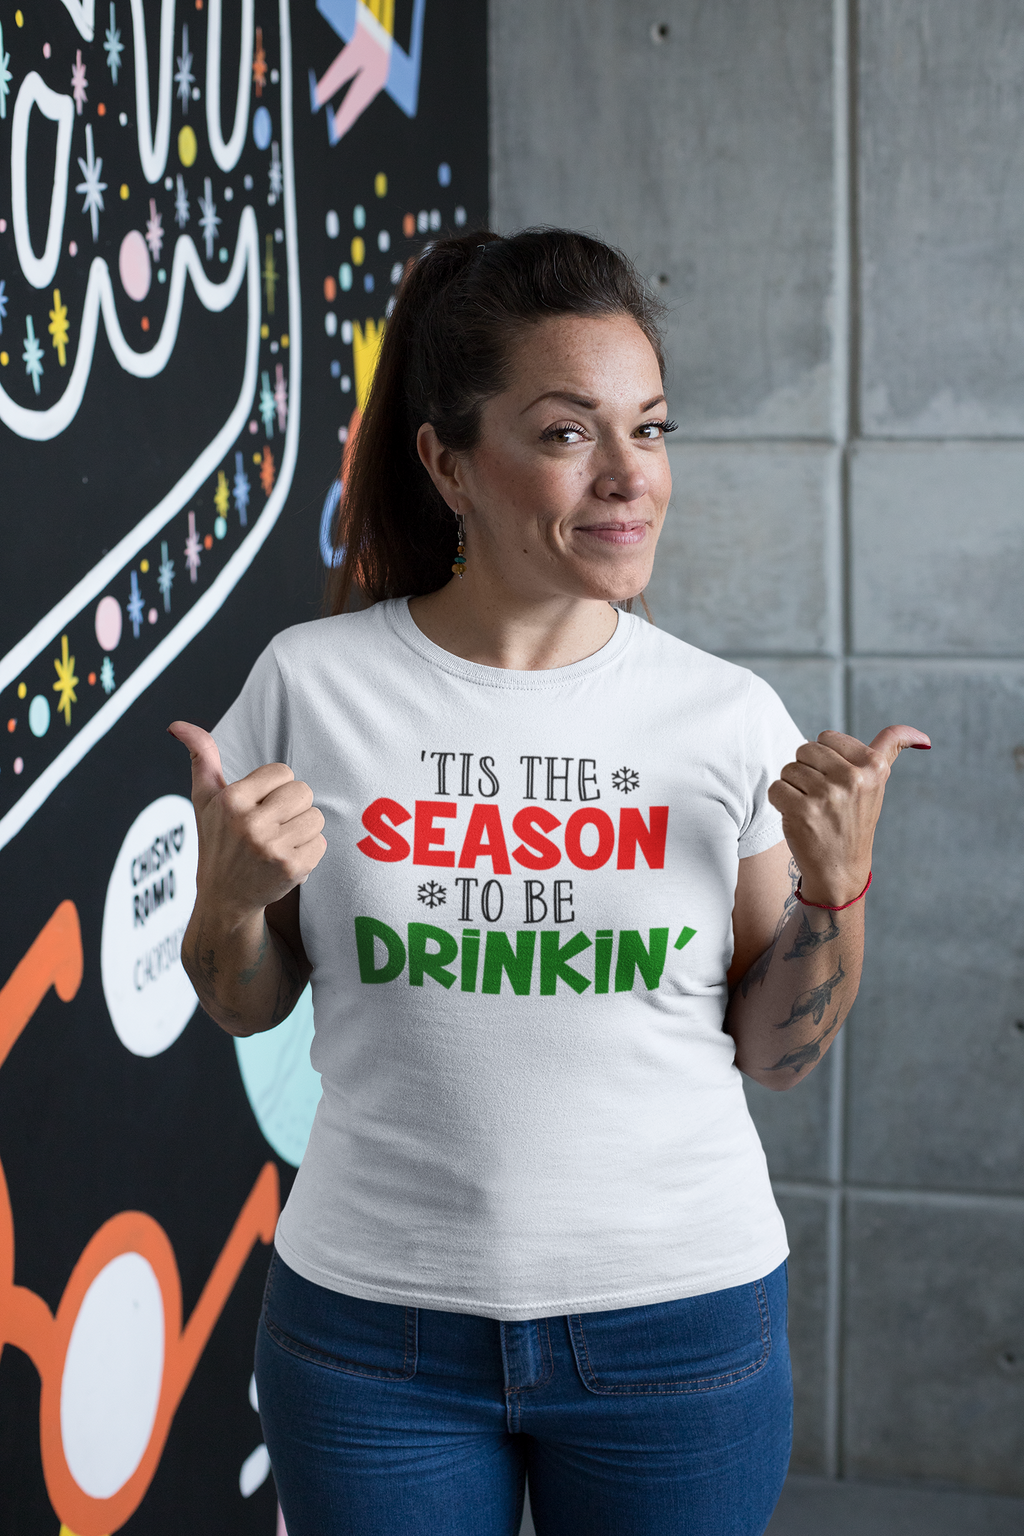 Tis the Season to be drinking! - So Swag Apparel